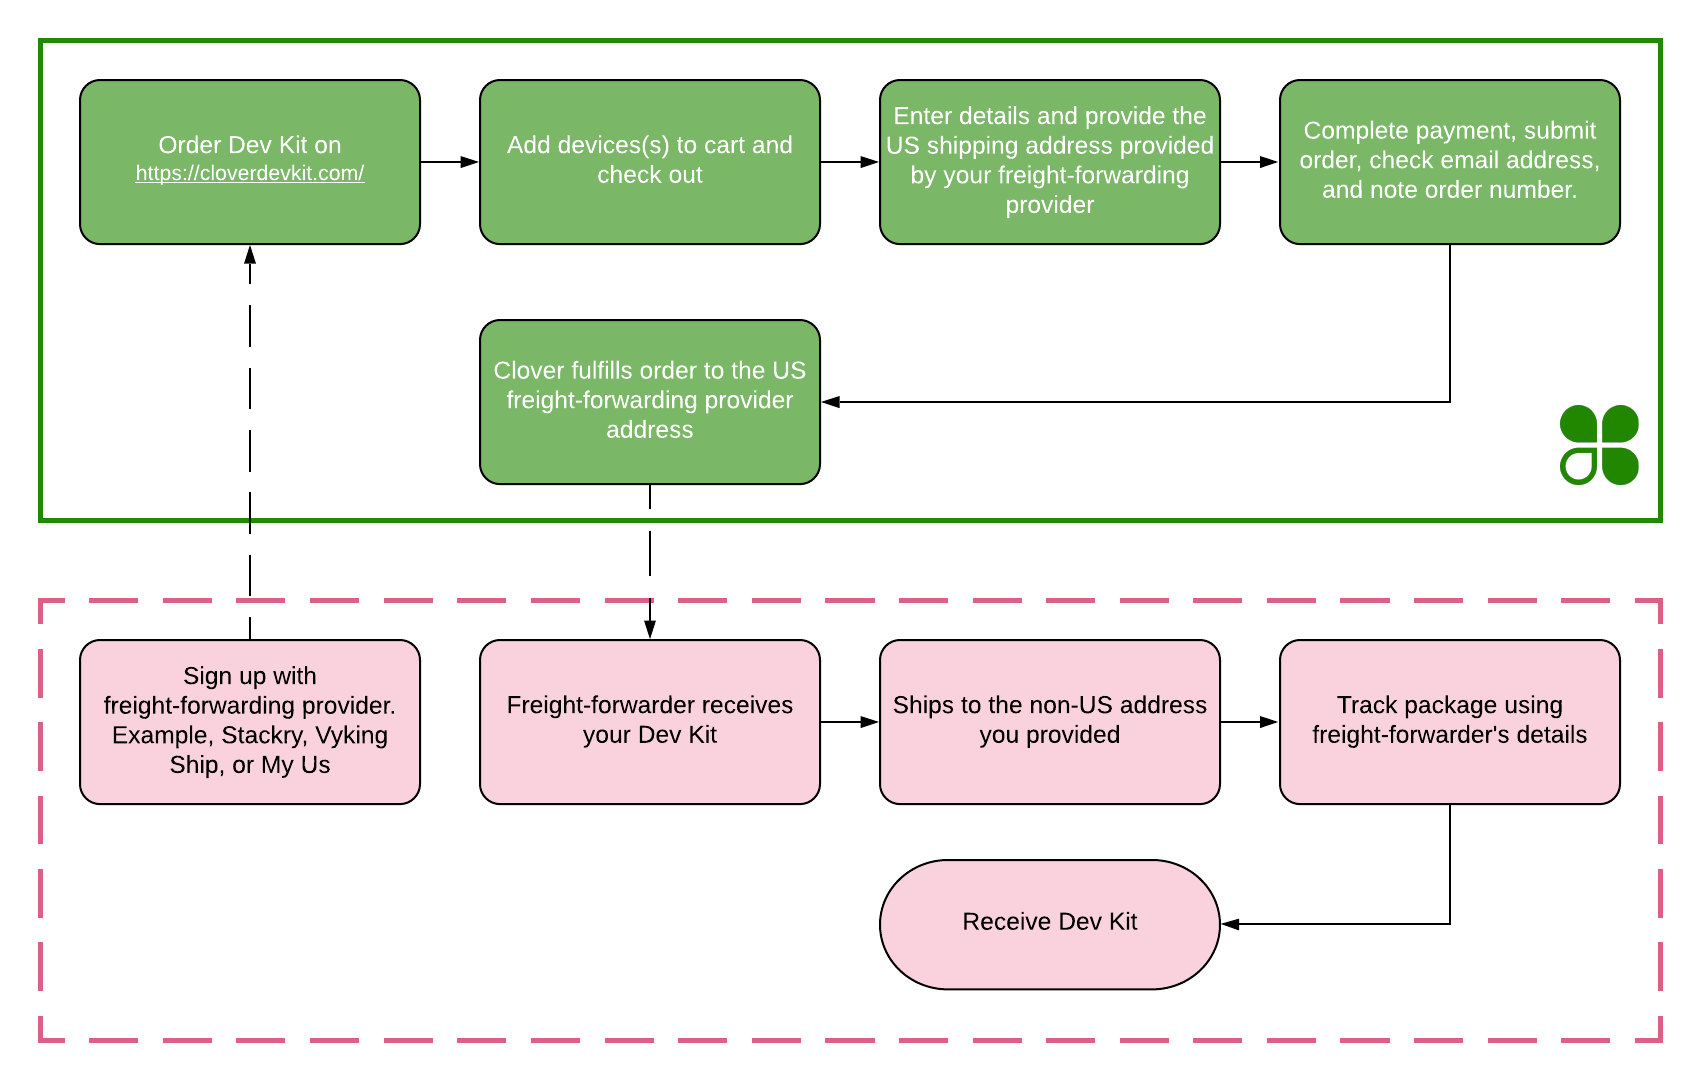 Diagram shows process to receive Dev Kit packages at non-US addresses using a freight-forwarder